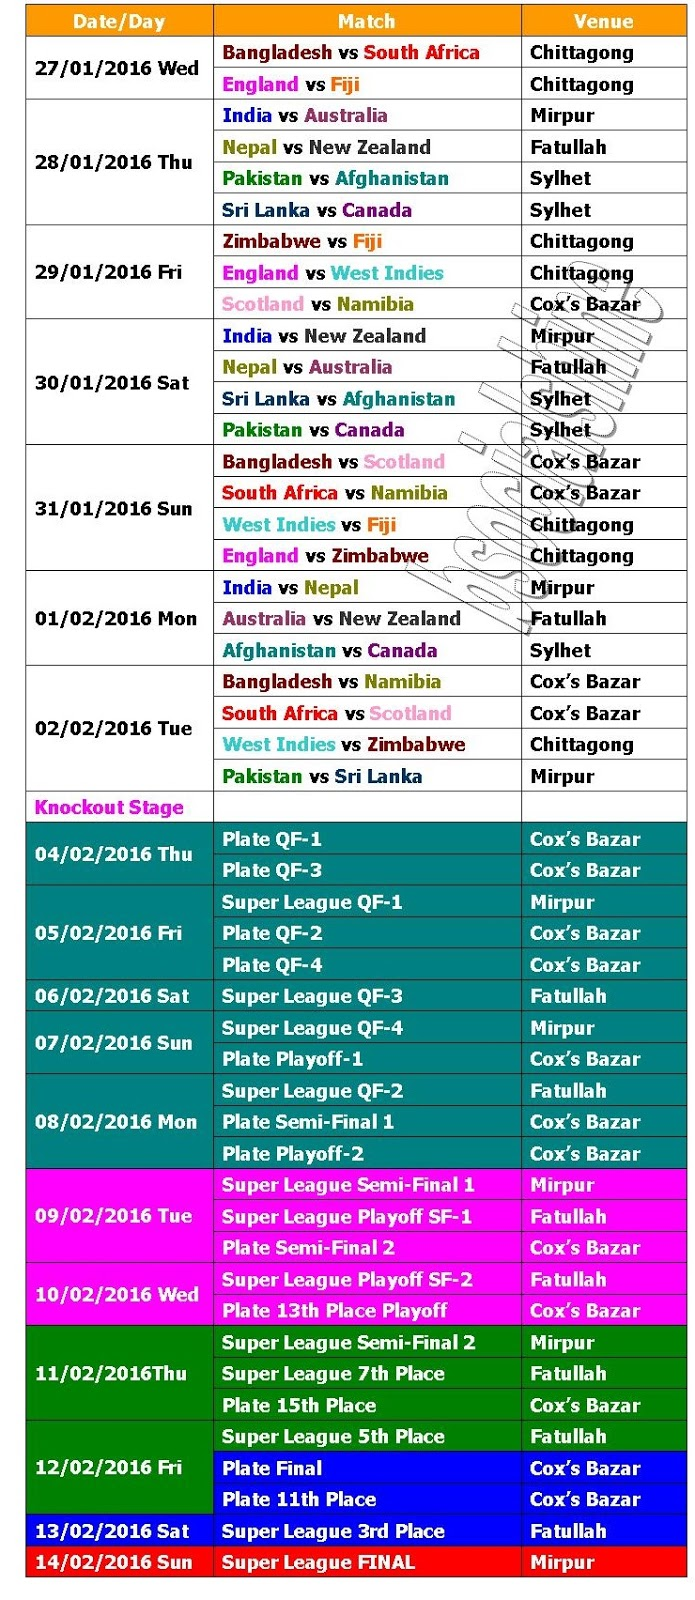 U19 WORLD CUP 2016 FIXTURES EBOOK DOWNLOAD